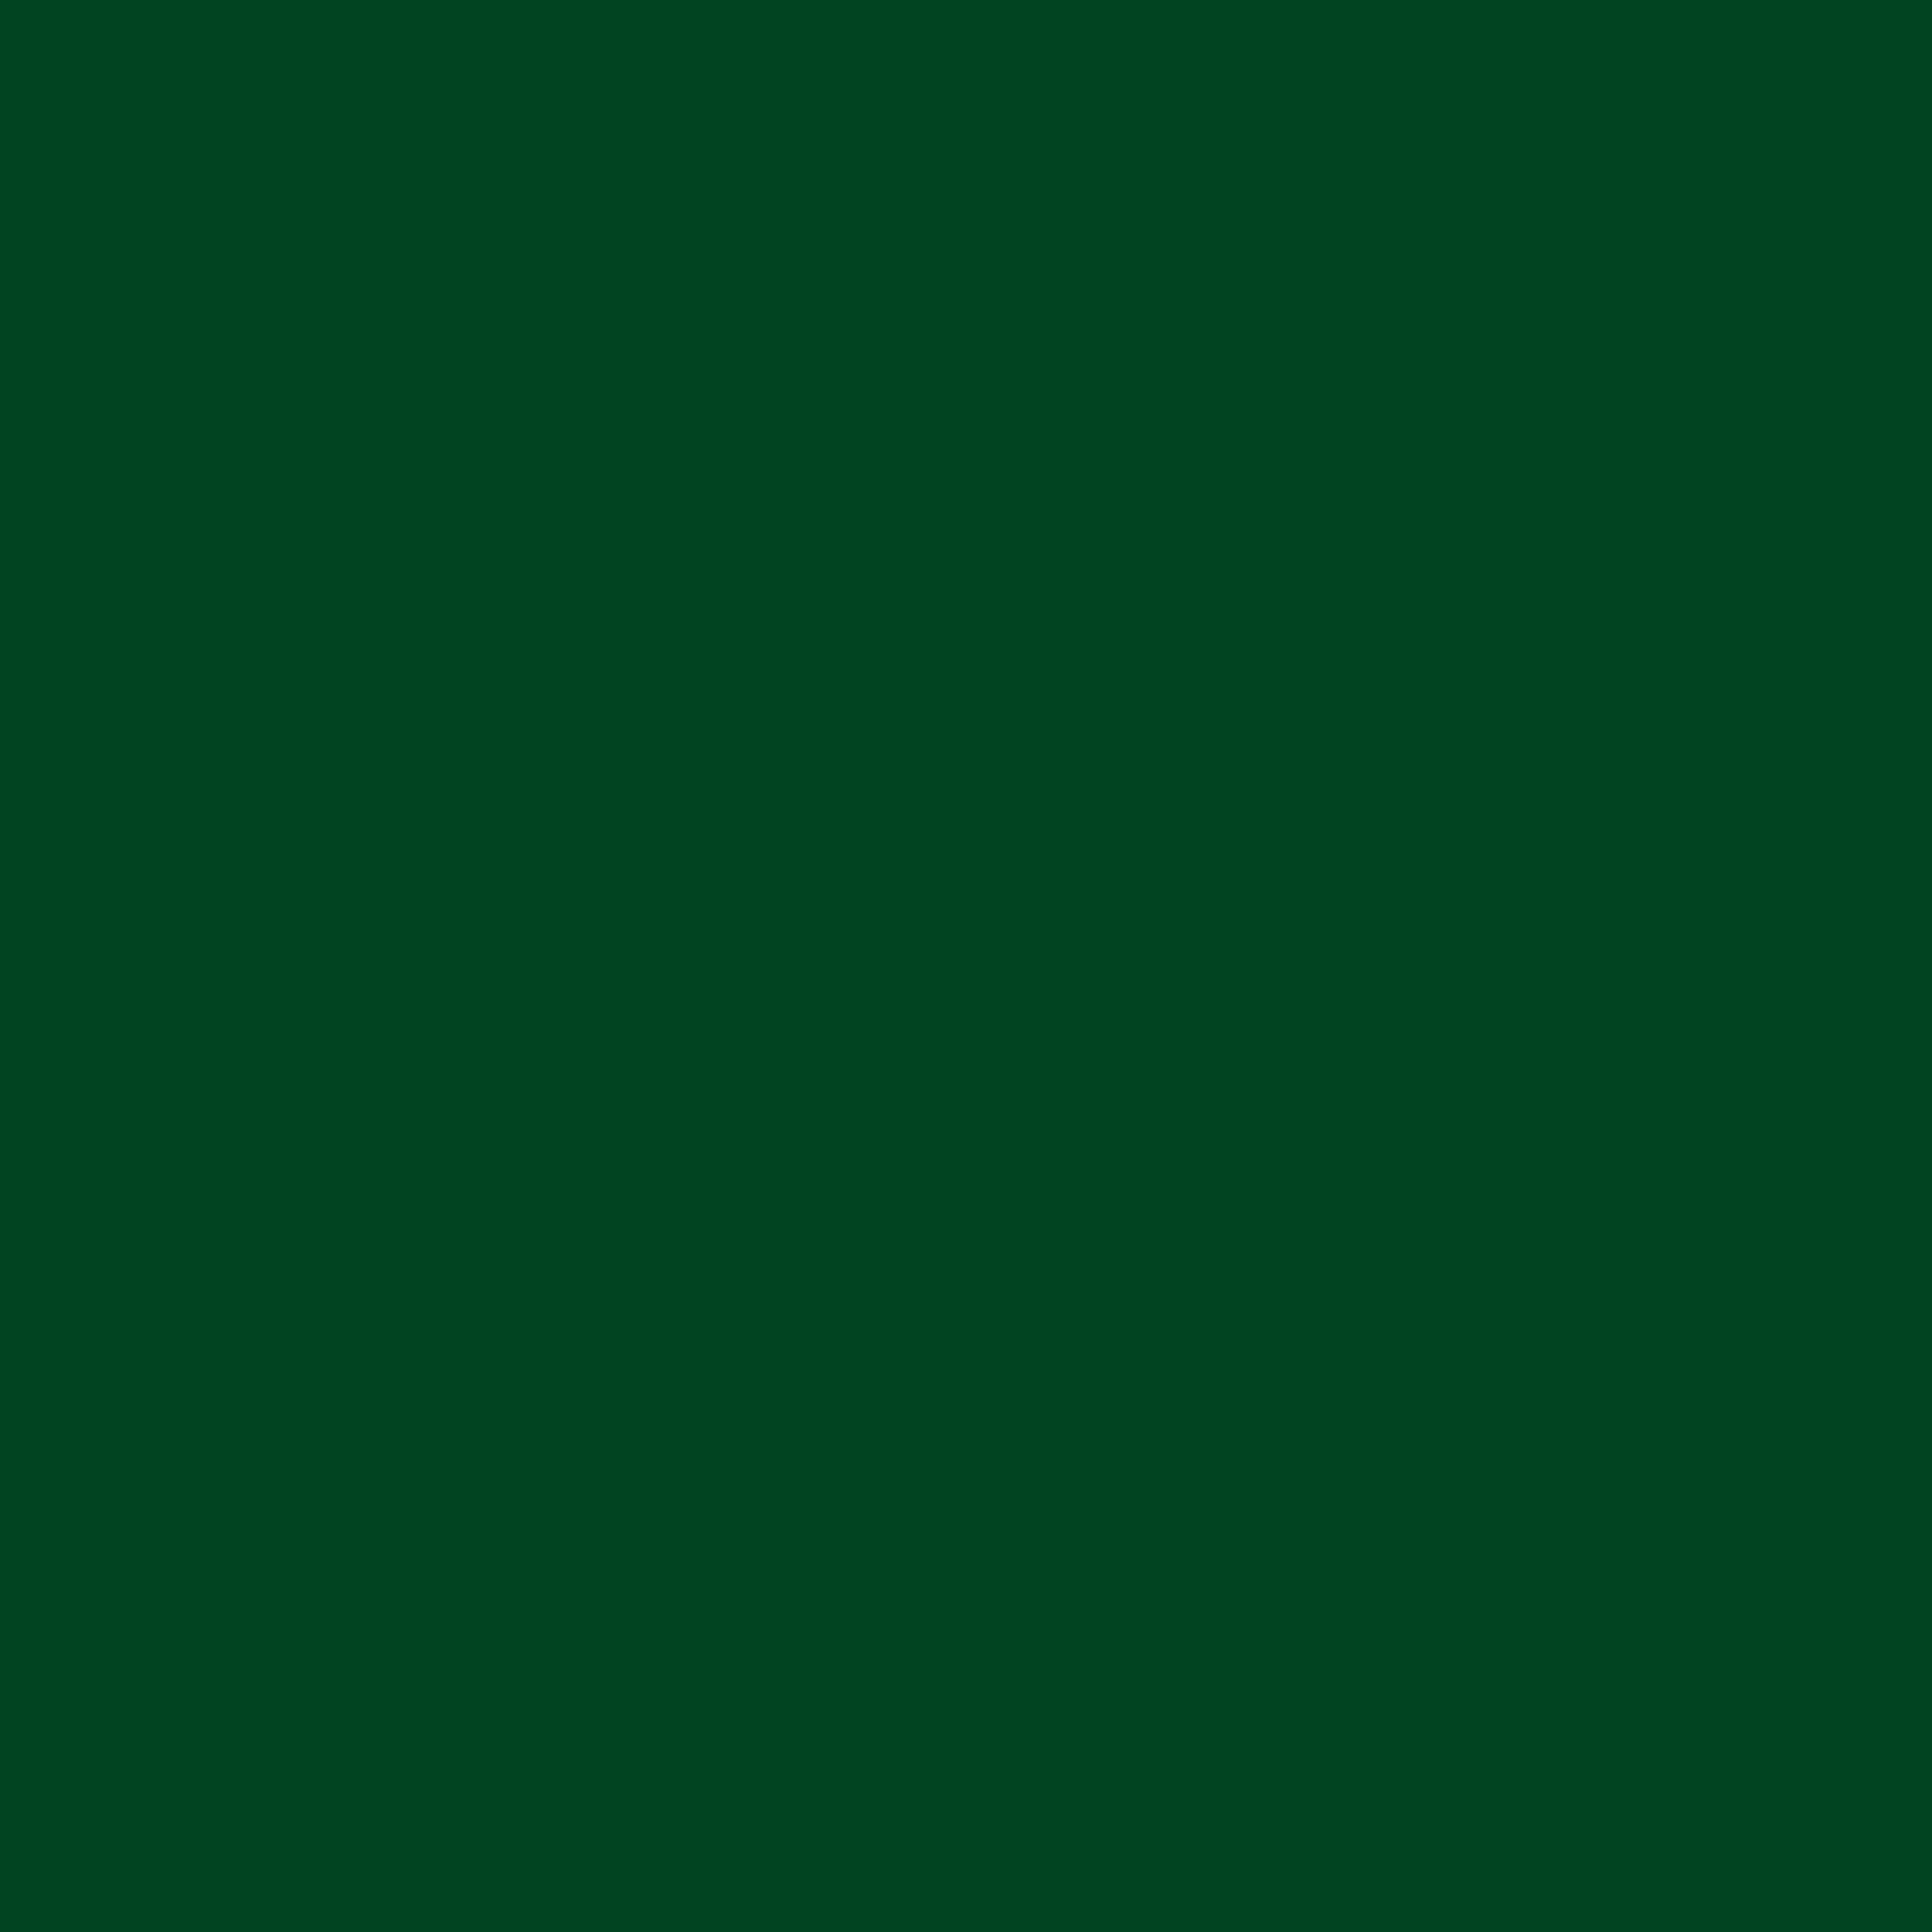 2048x2048 Forest Green Traditional Solid Color Background